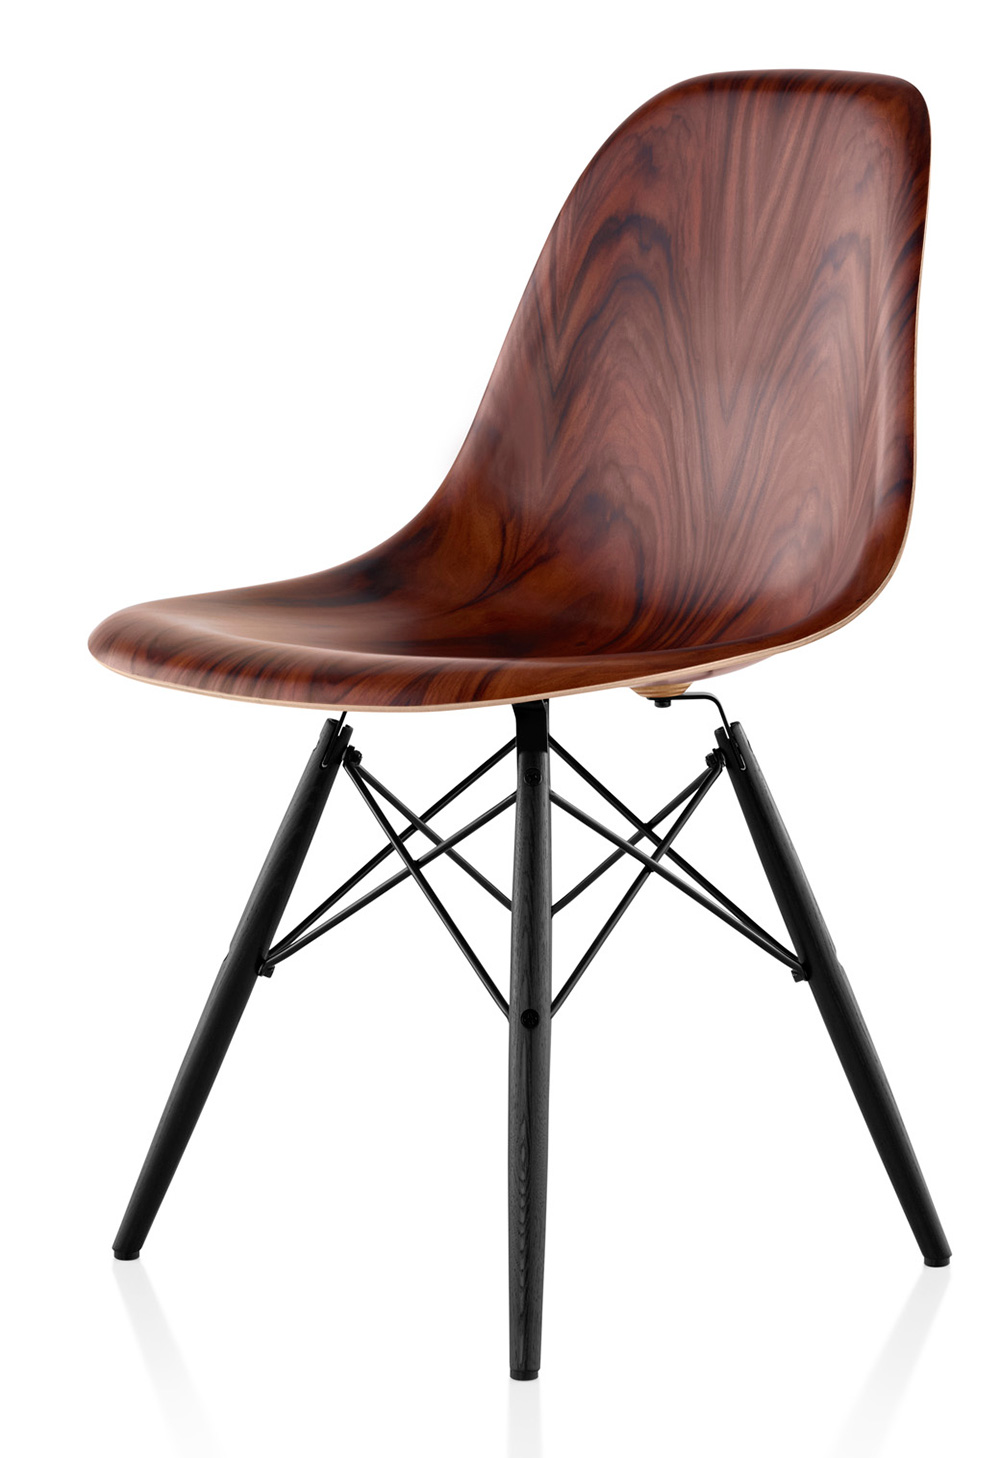 Eames Moulded Timber Side Chair from Herman Miller | Yellowtrace.